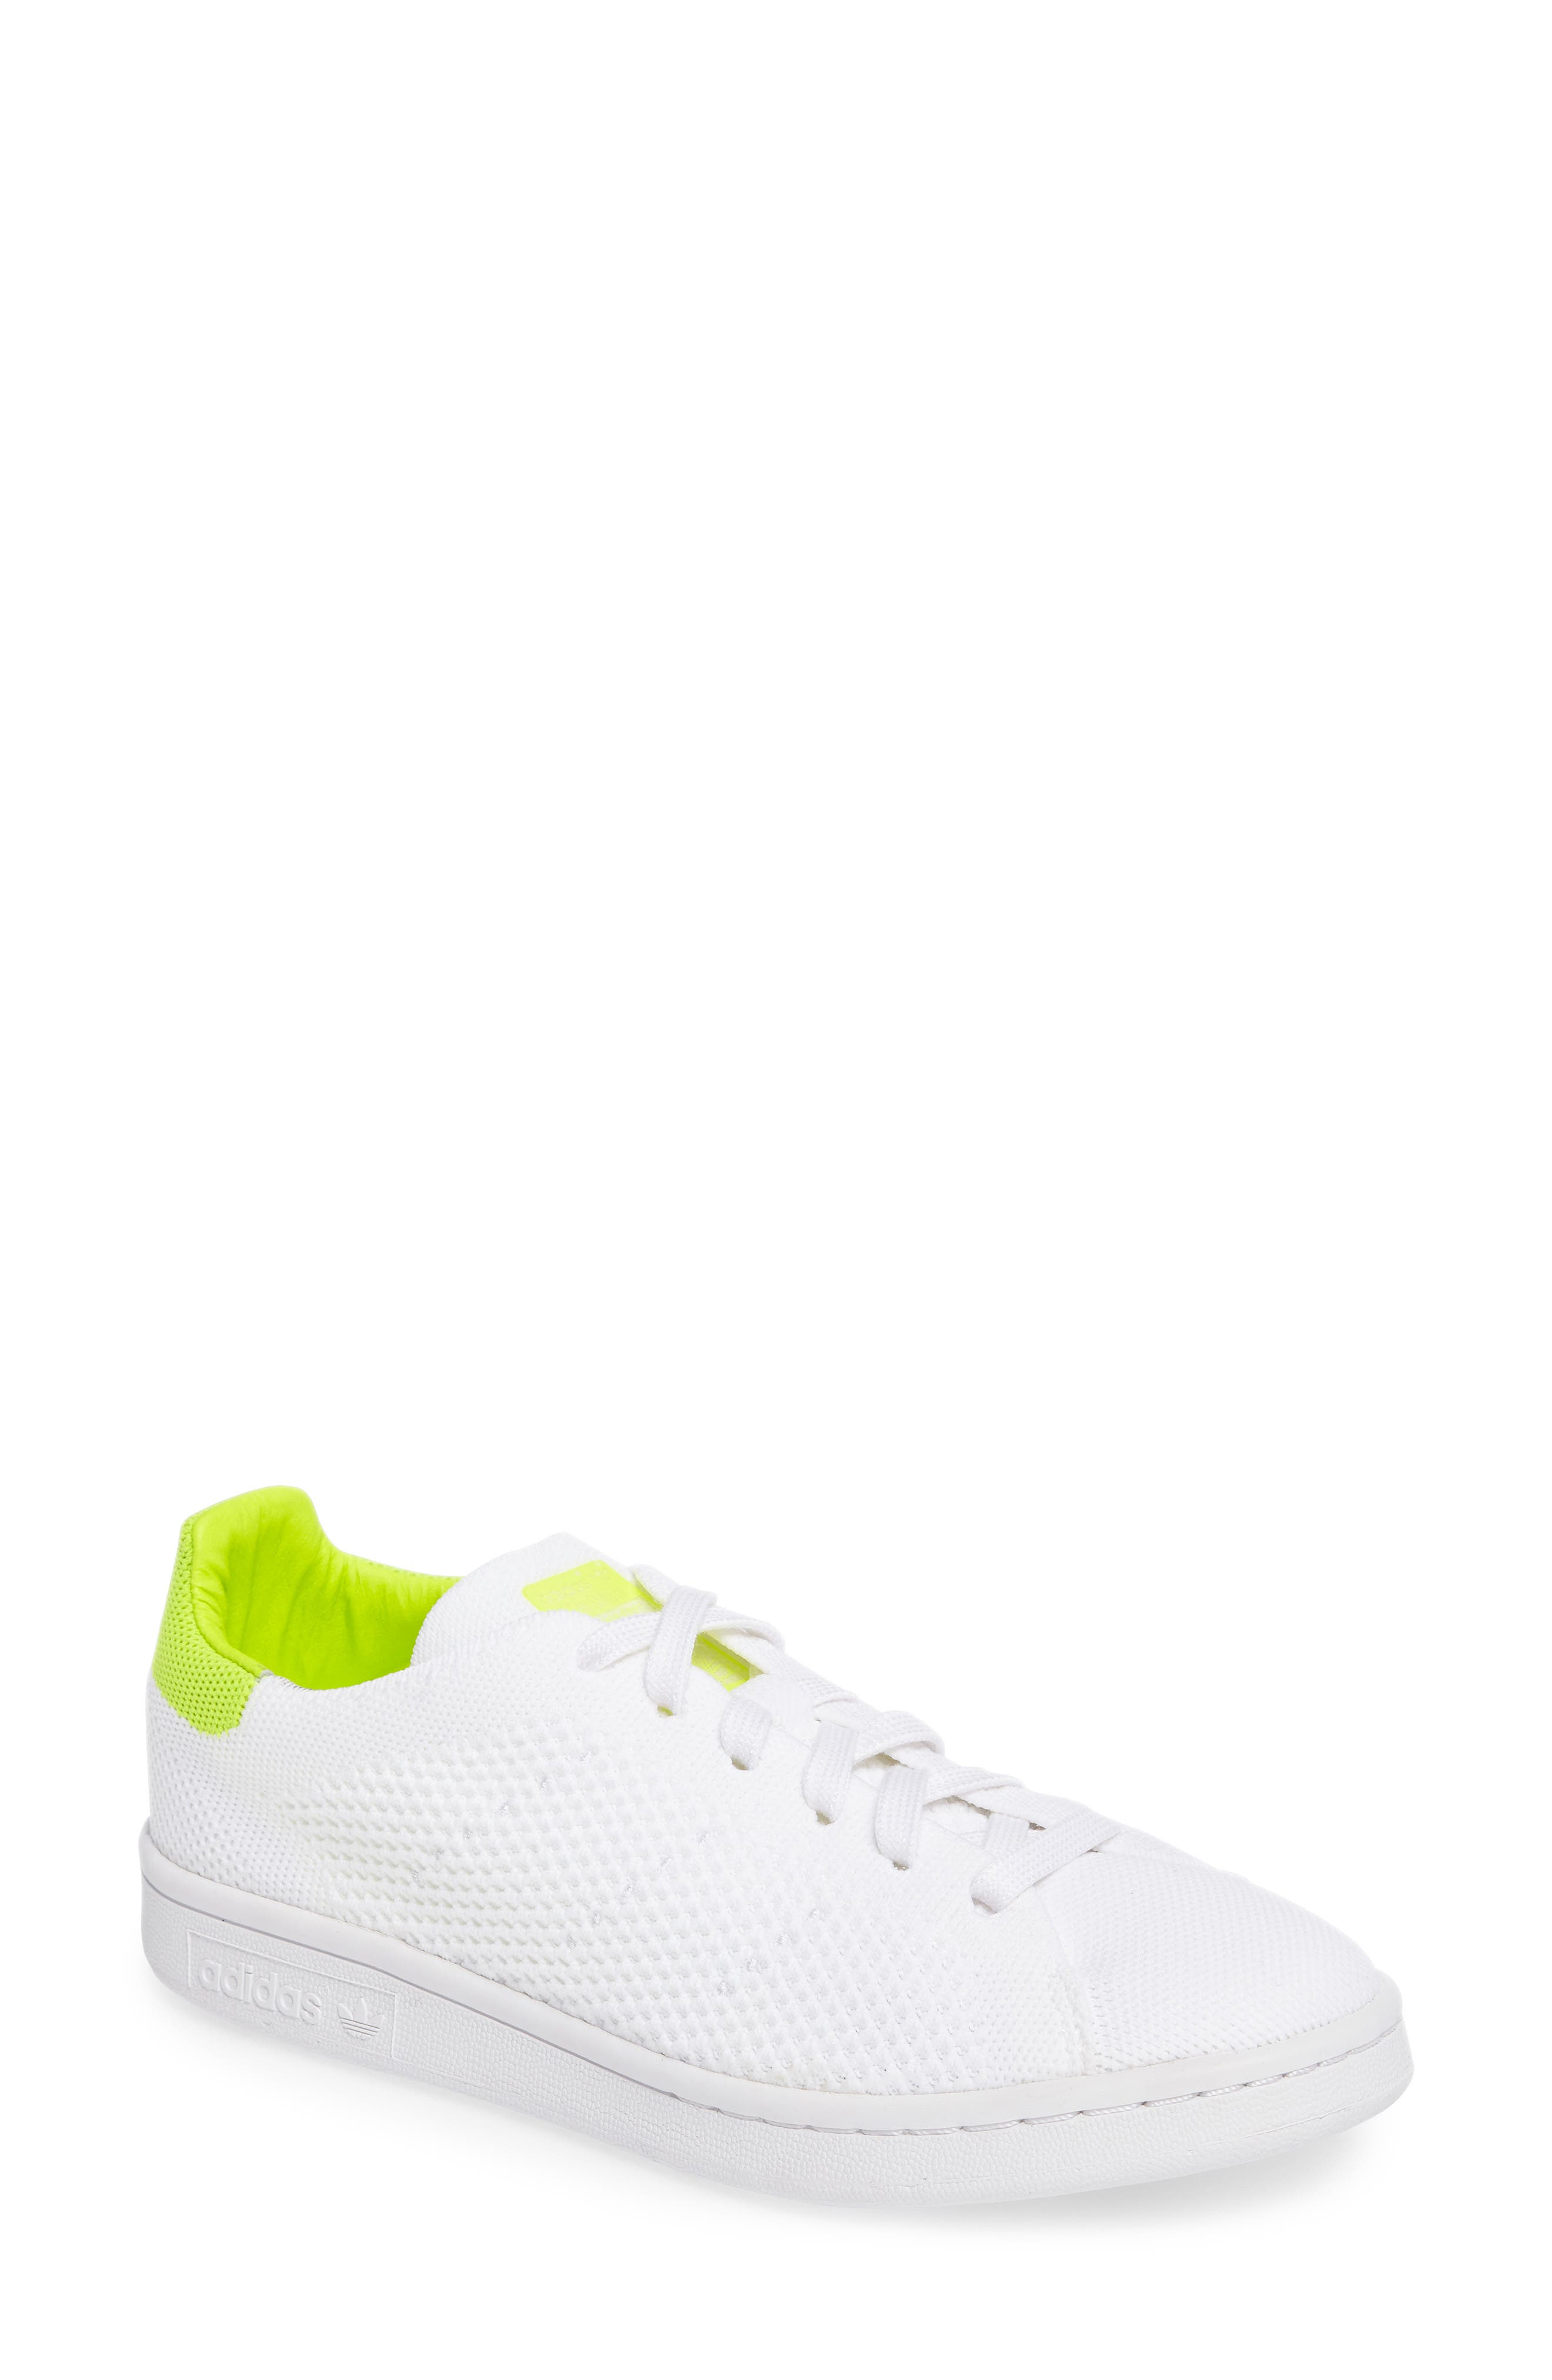 Alternate Image 1 Selected - adidas Stan Smith - Primeknit Sneaker (Women)